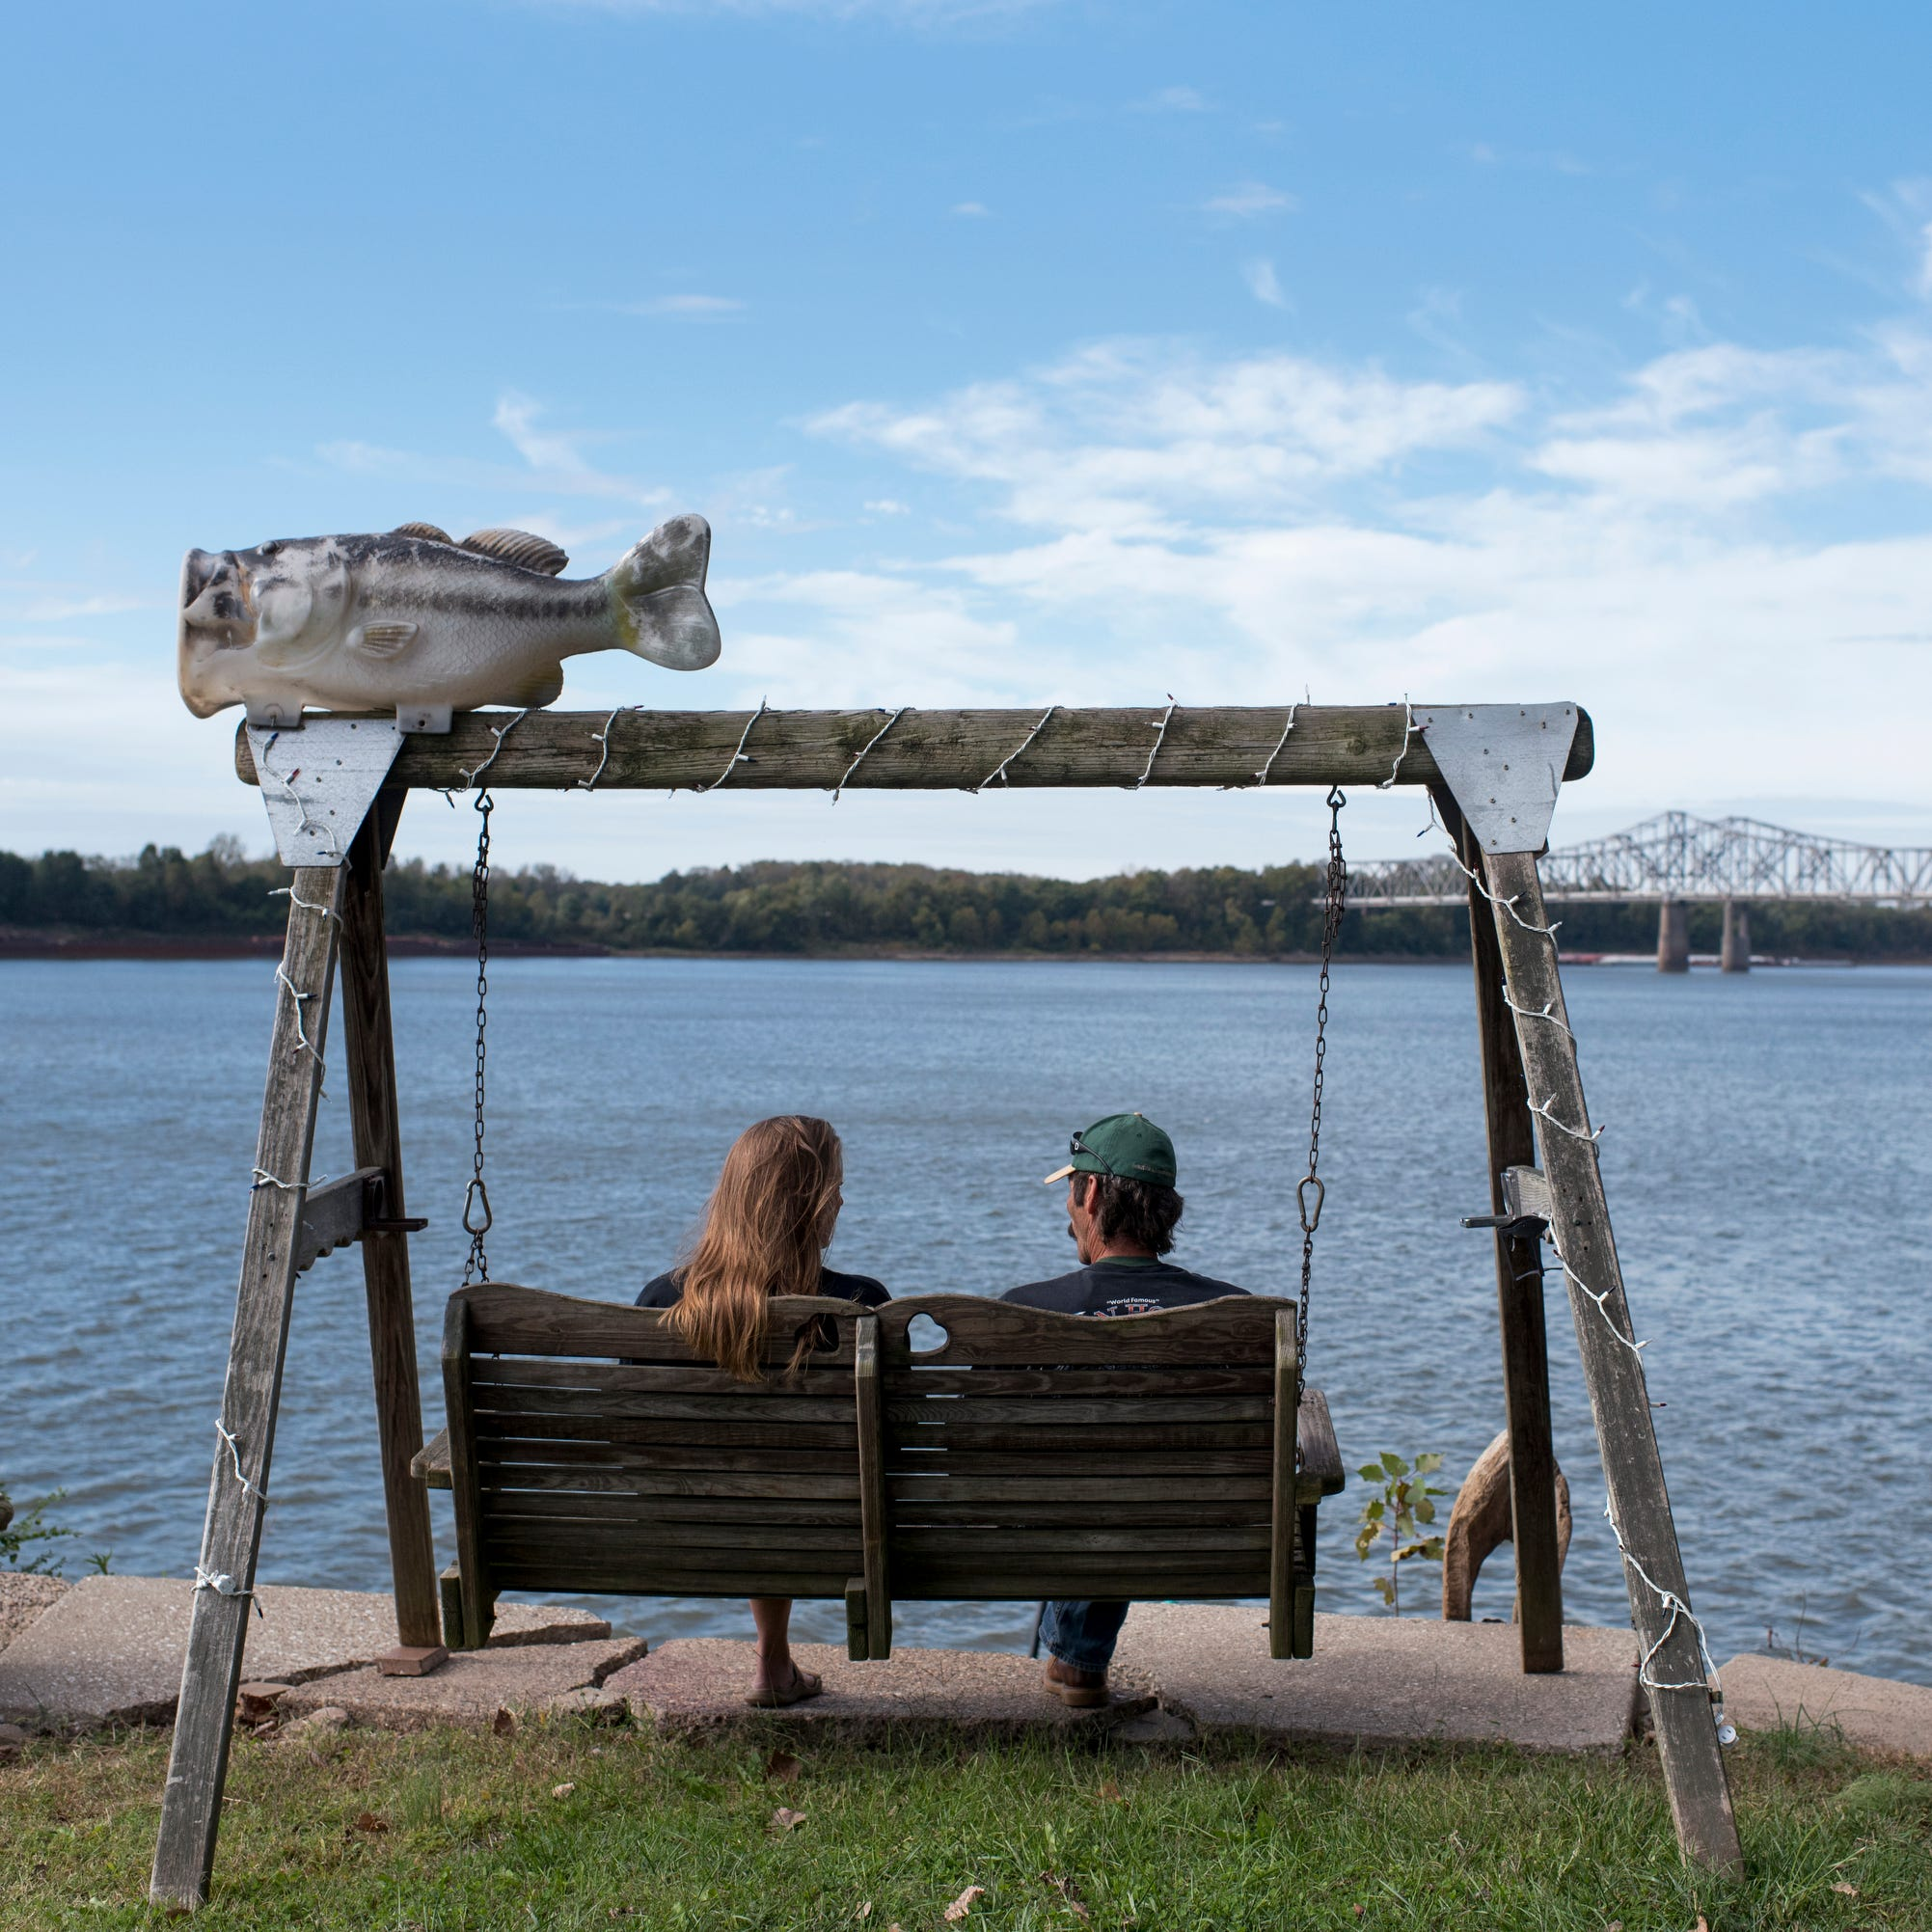 Personal paradise: Ohio River draws a strong, tight-knit community